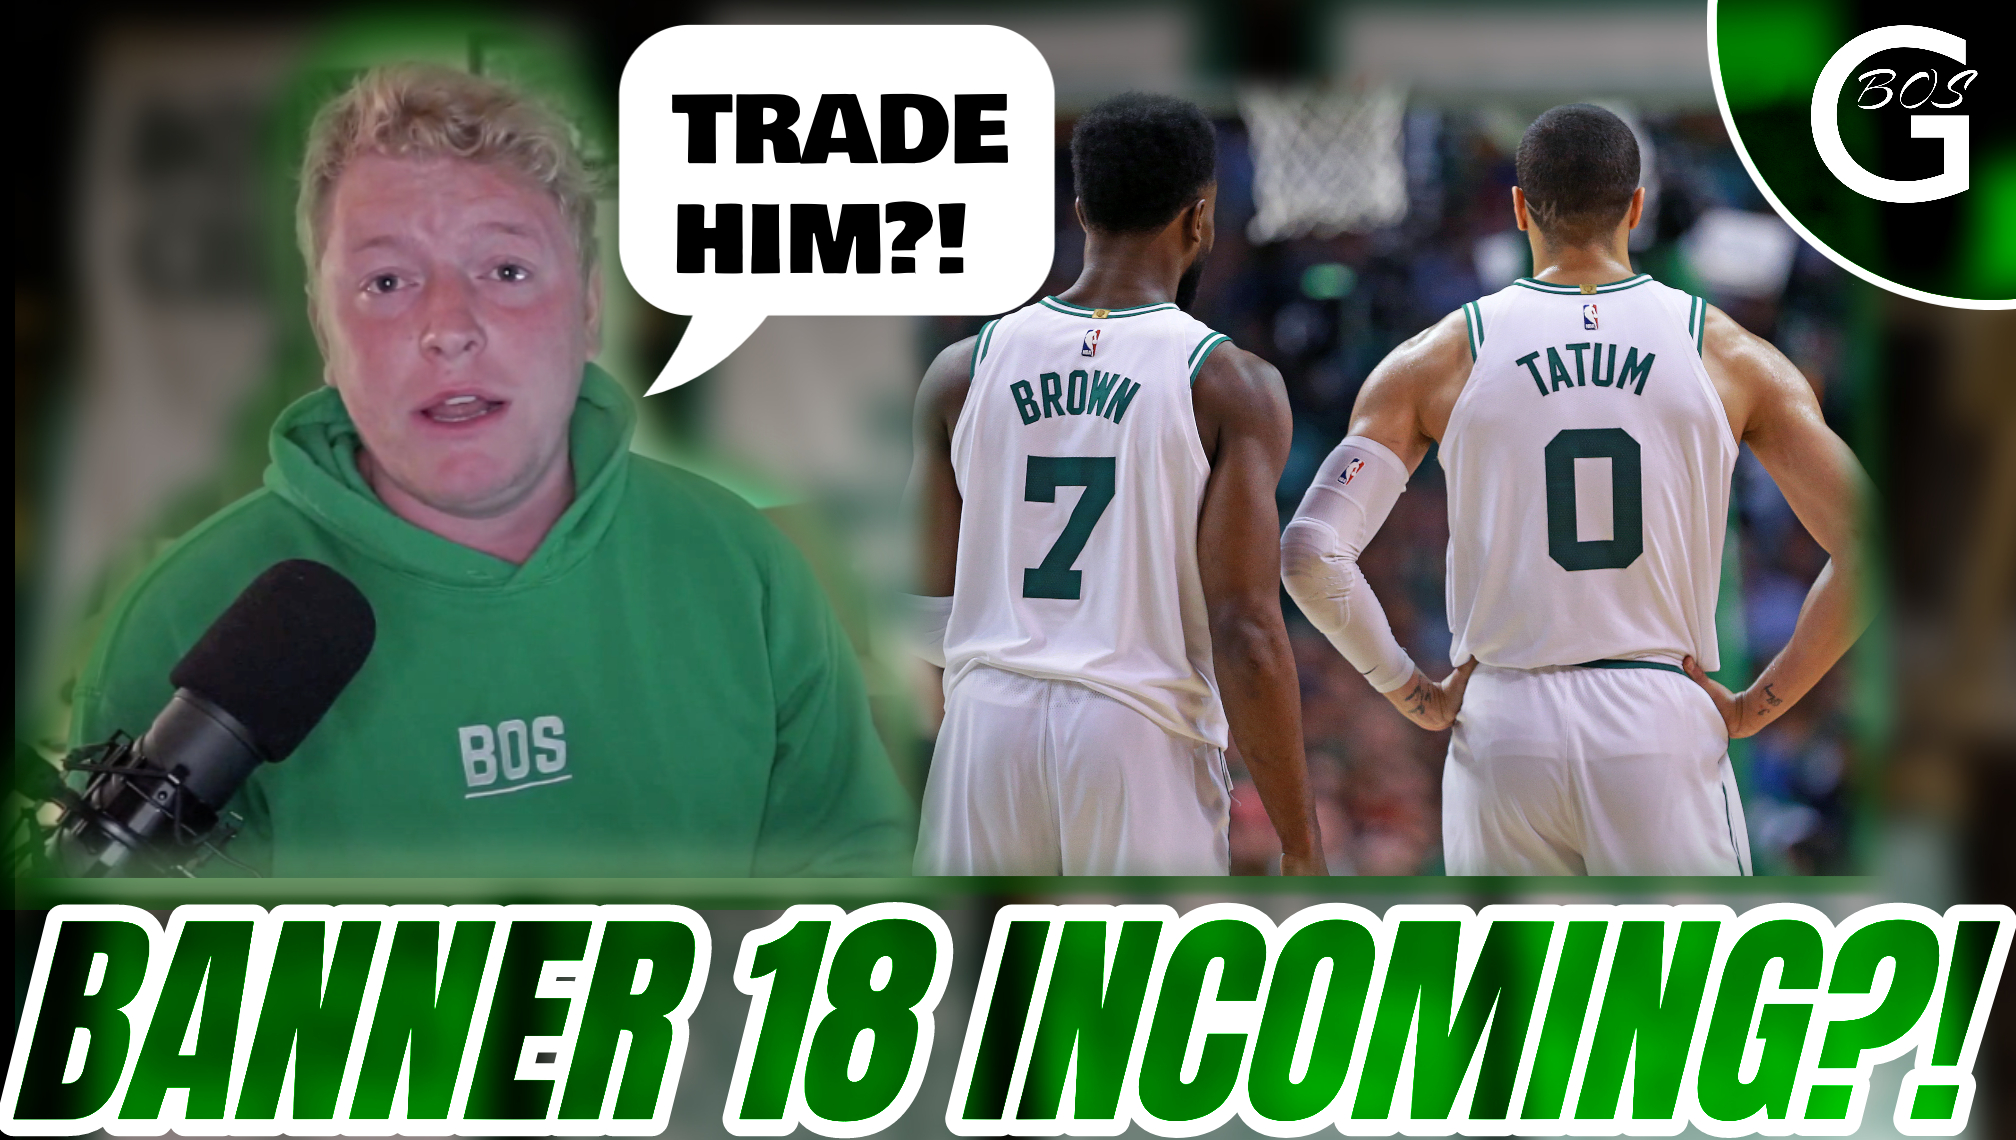 Next Steps for the Celtics Towards Winning a Championship